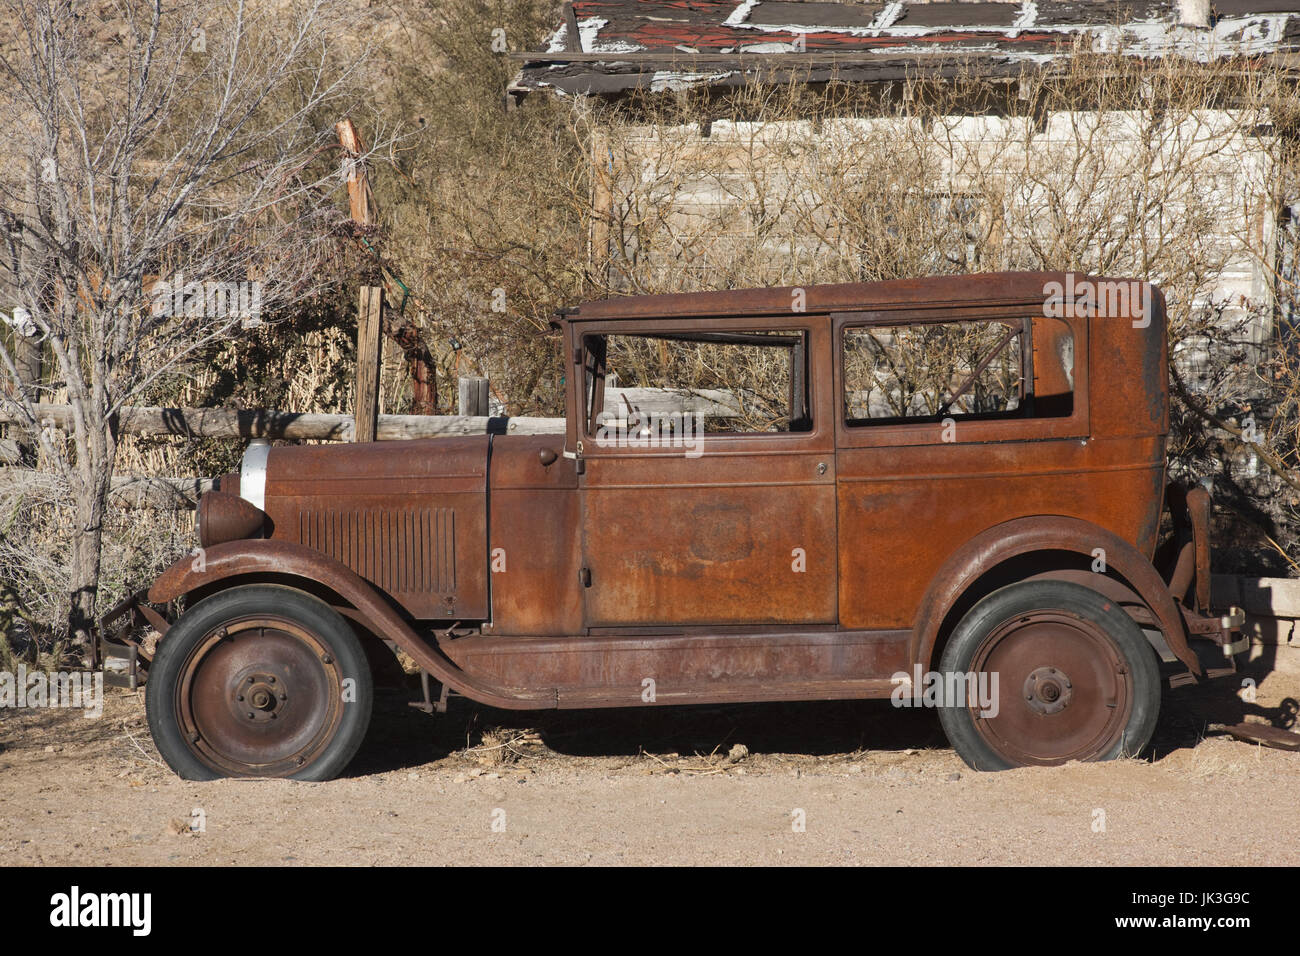 USA, Arizona, Hackberry, Rt. 66 Town, Old Rt 66 Visitor Center, 1930's car - Stock Image